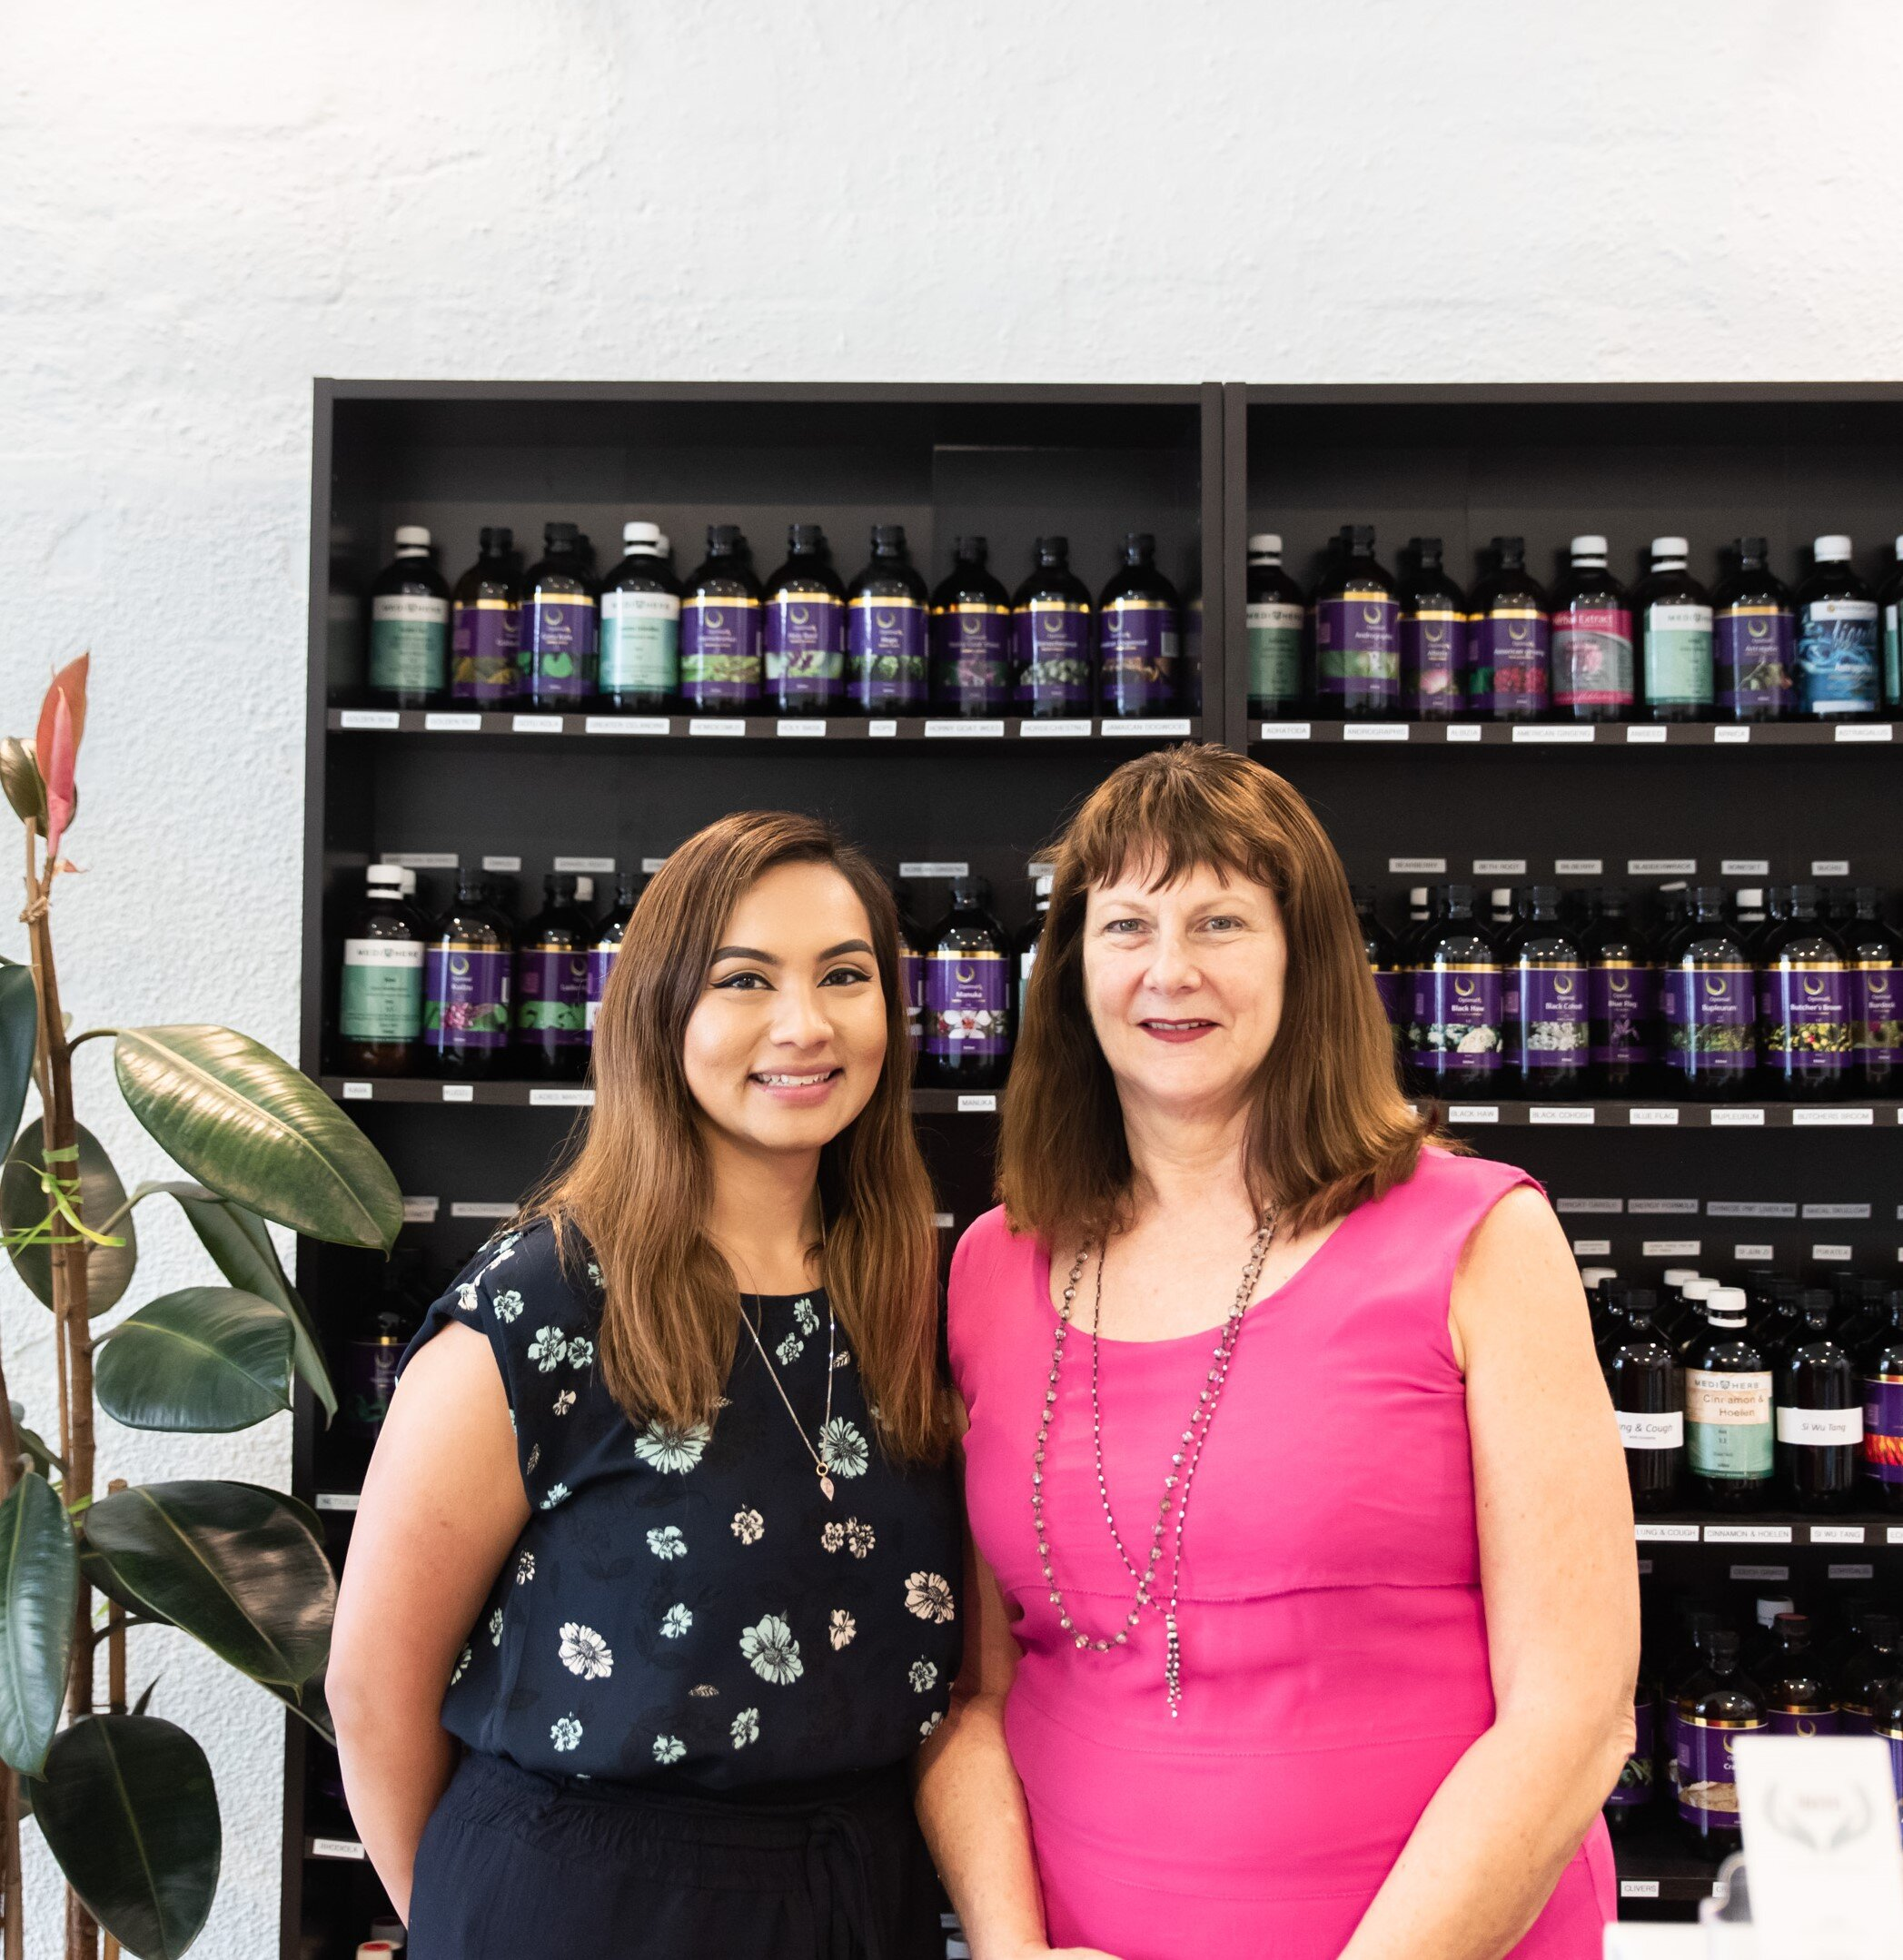 Shalini (director of INHH) and Ruth Trickey. Inner North Holistic Health was established in 2018, after the closure of Ruth's practice Melbourne Holistic Health Group. Ruth retired in March 2018, and Shalini opened INHH to continue to provide for existing patients of MHHG.